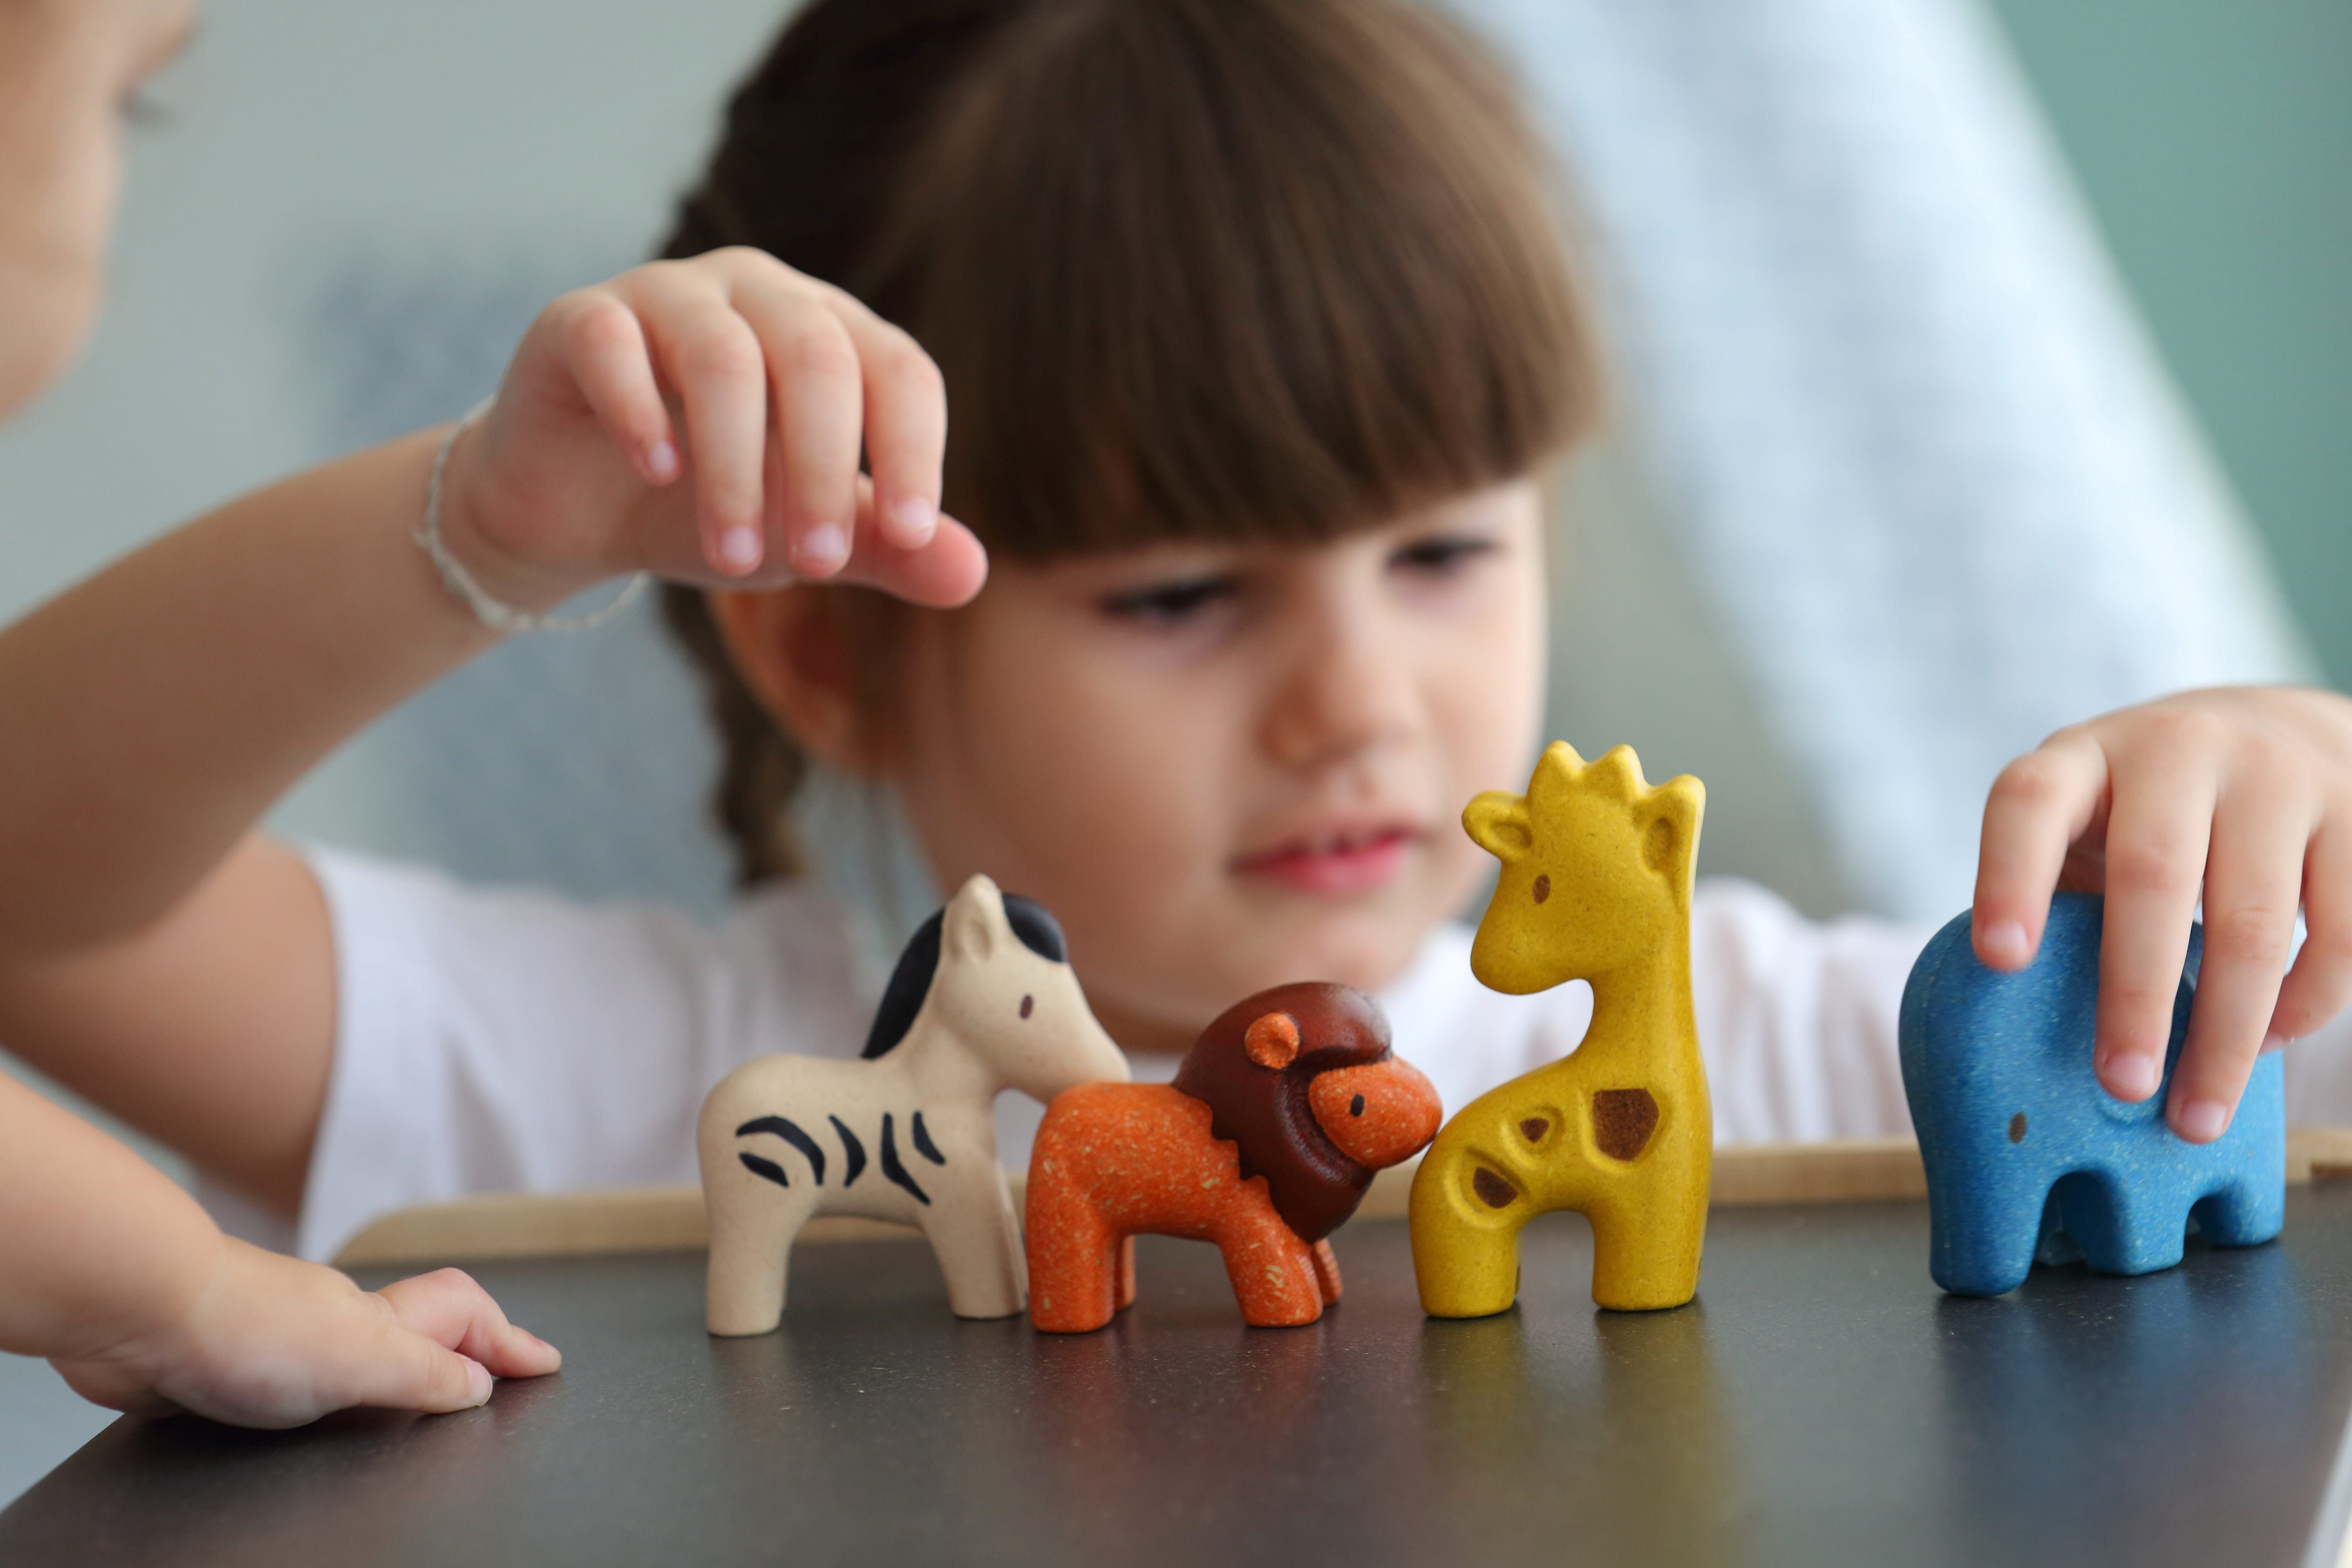 6128_PlanToys_WILD_ANIMALS_SET_Pretend_Play_Imagination_Coordination_Creative_Language_and_Communications_Social_Emotion_12m_Wooden_toys_Education_toys_Safety_Toys_Non-toxic_0.jpg